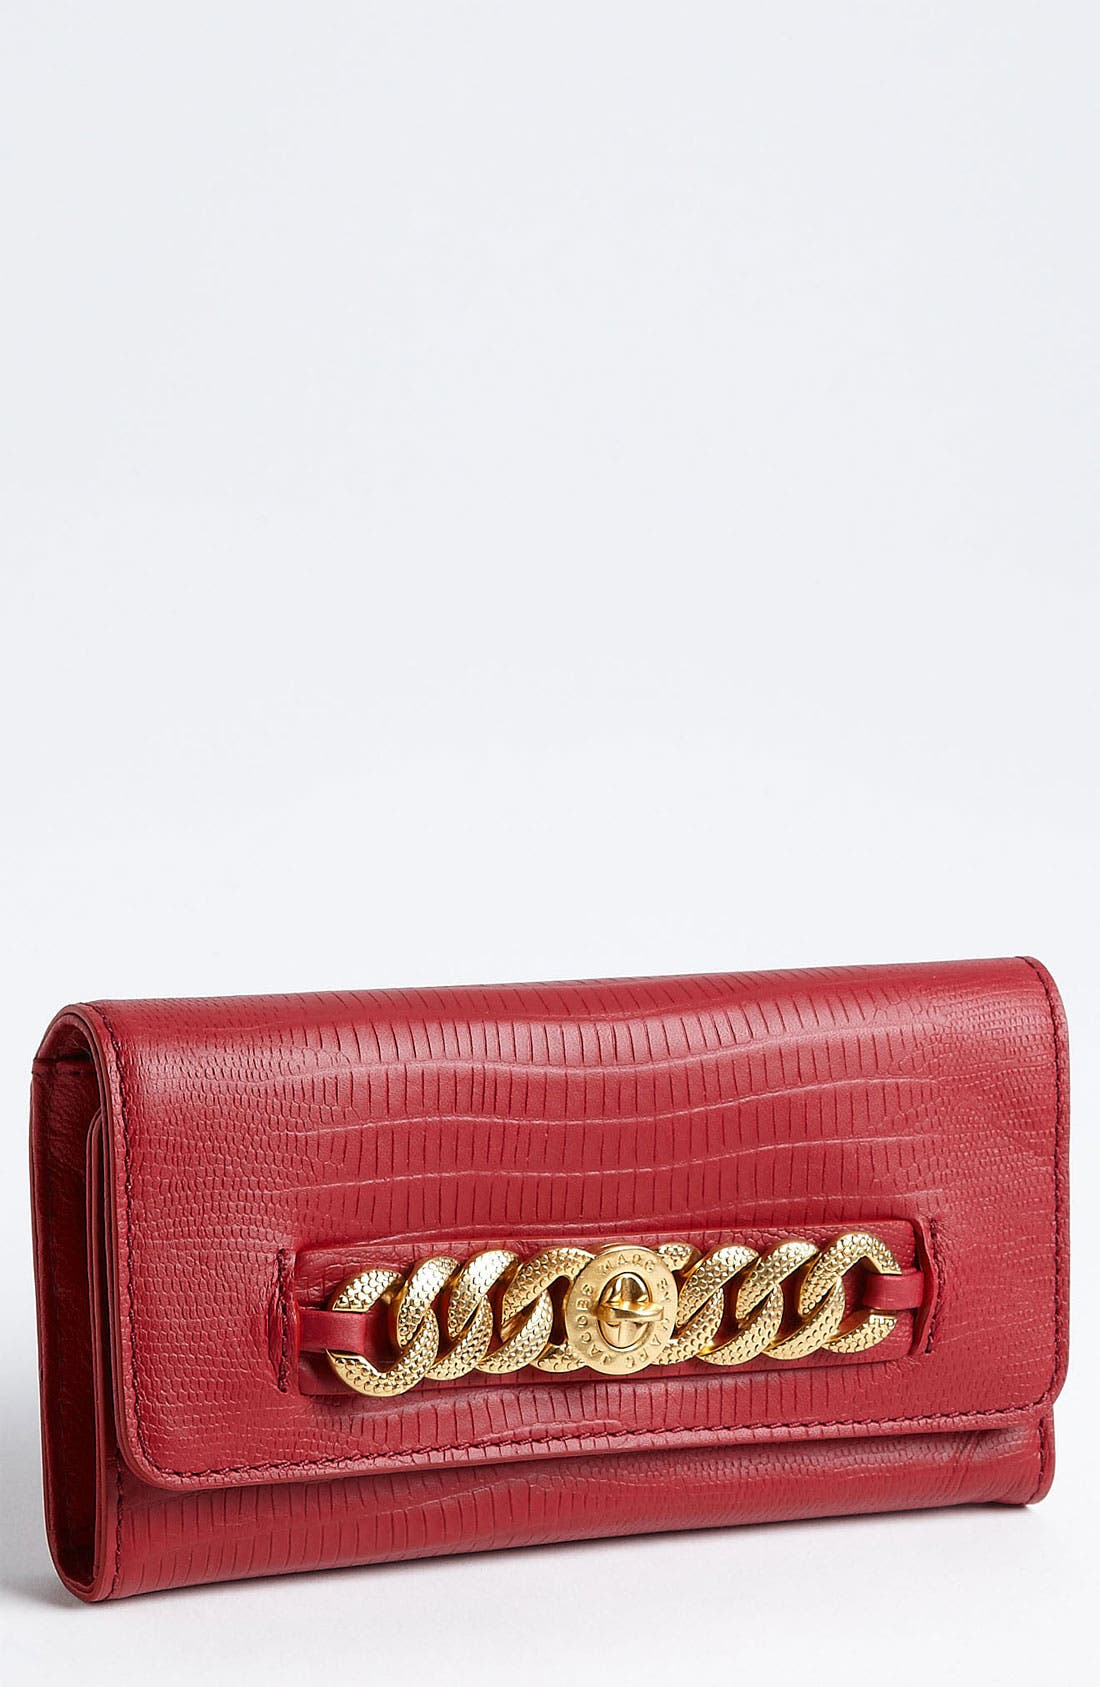 Alternate Image 1 Selected - MARC BY MARC JACOBS 'Katie Bracelet' Trifold Wallet